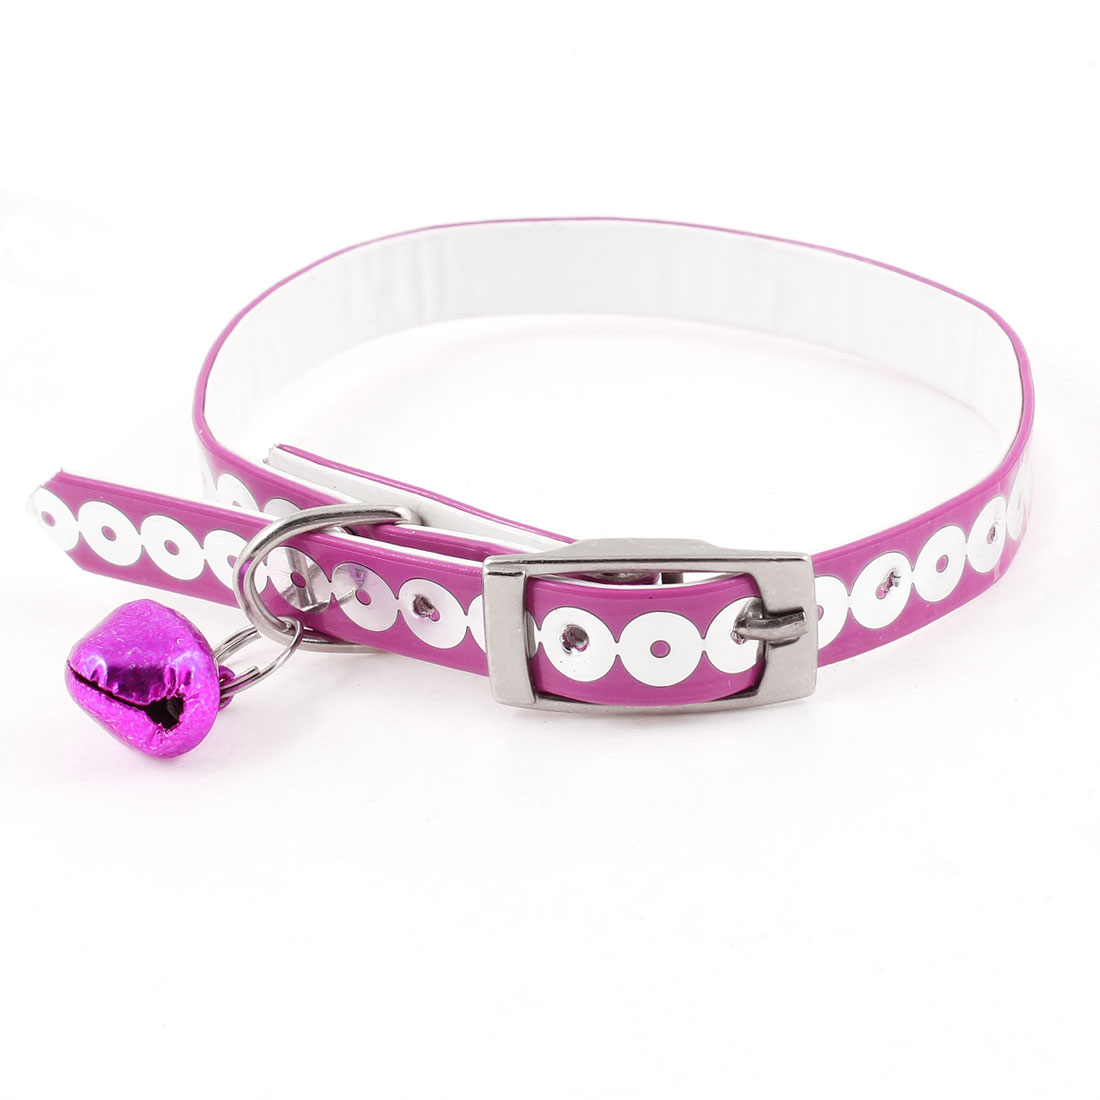 Faux Leather Adjustable Metal Jingle Bell Sequin Detail Dog Pet Collar Fuchsia